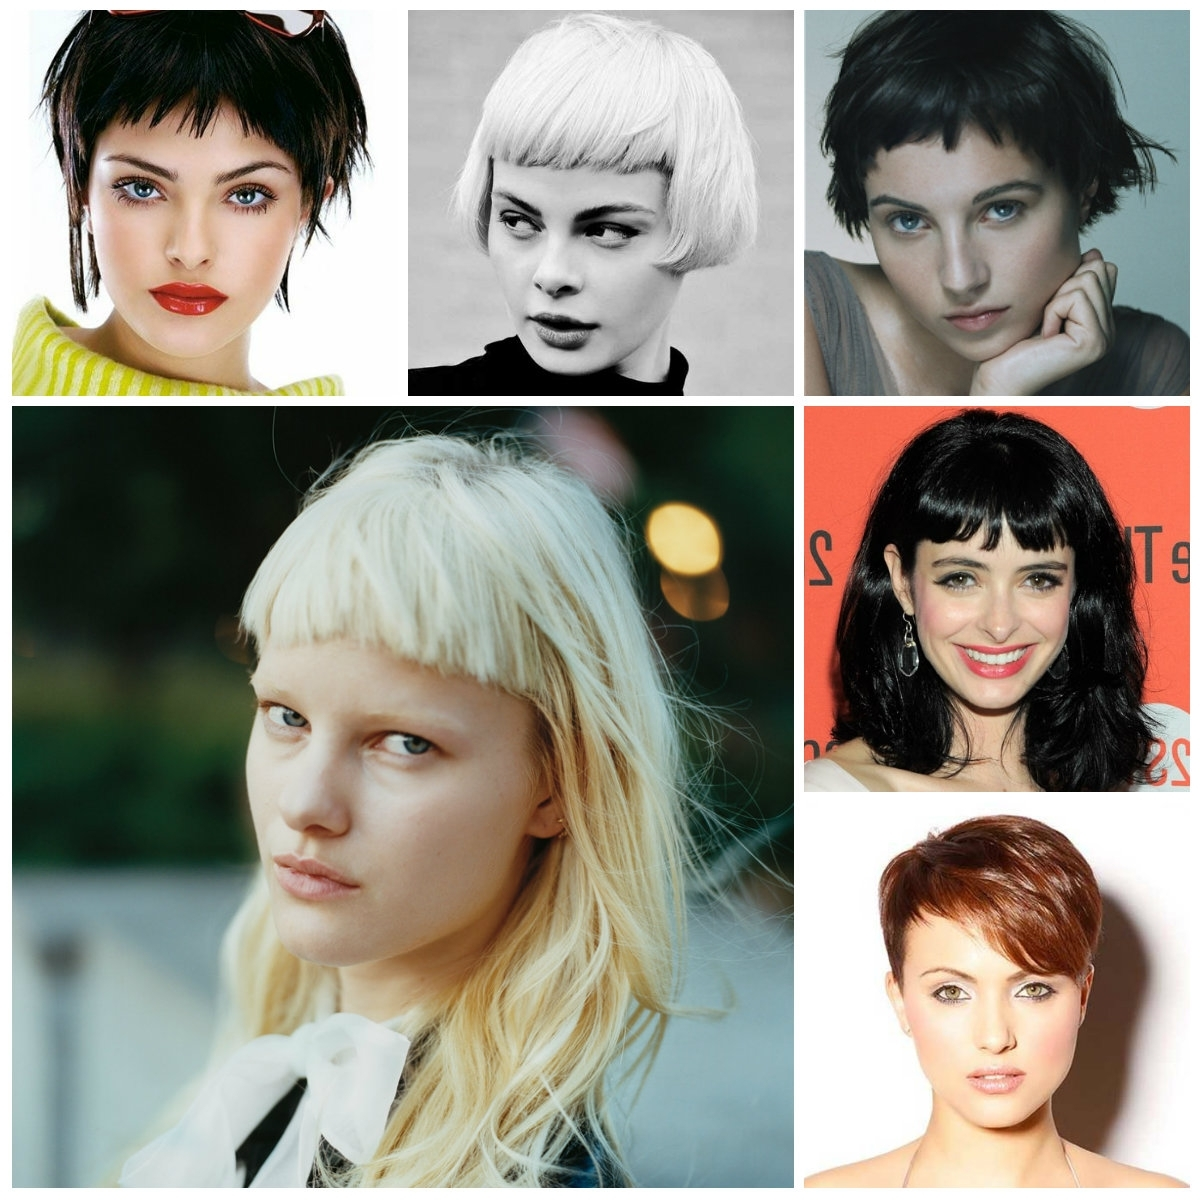 Hairstyles With Short Bangs For 2017 | Hairstyles 2018 New Regarding Recent Pixie Hairstyles With Fringe (View 4 of 15)